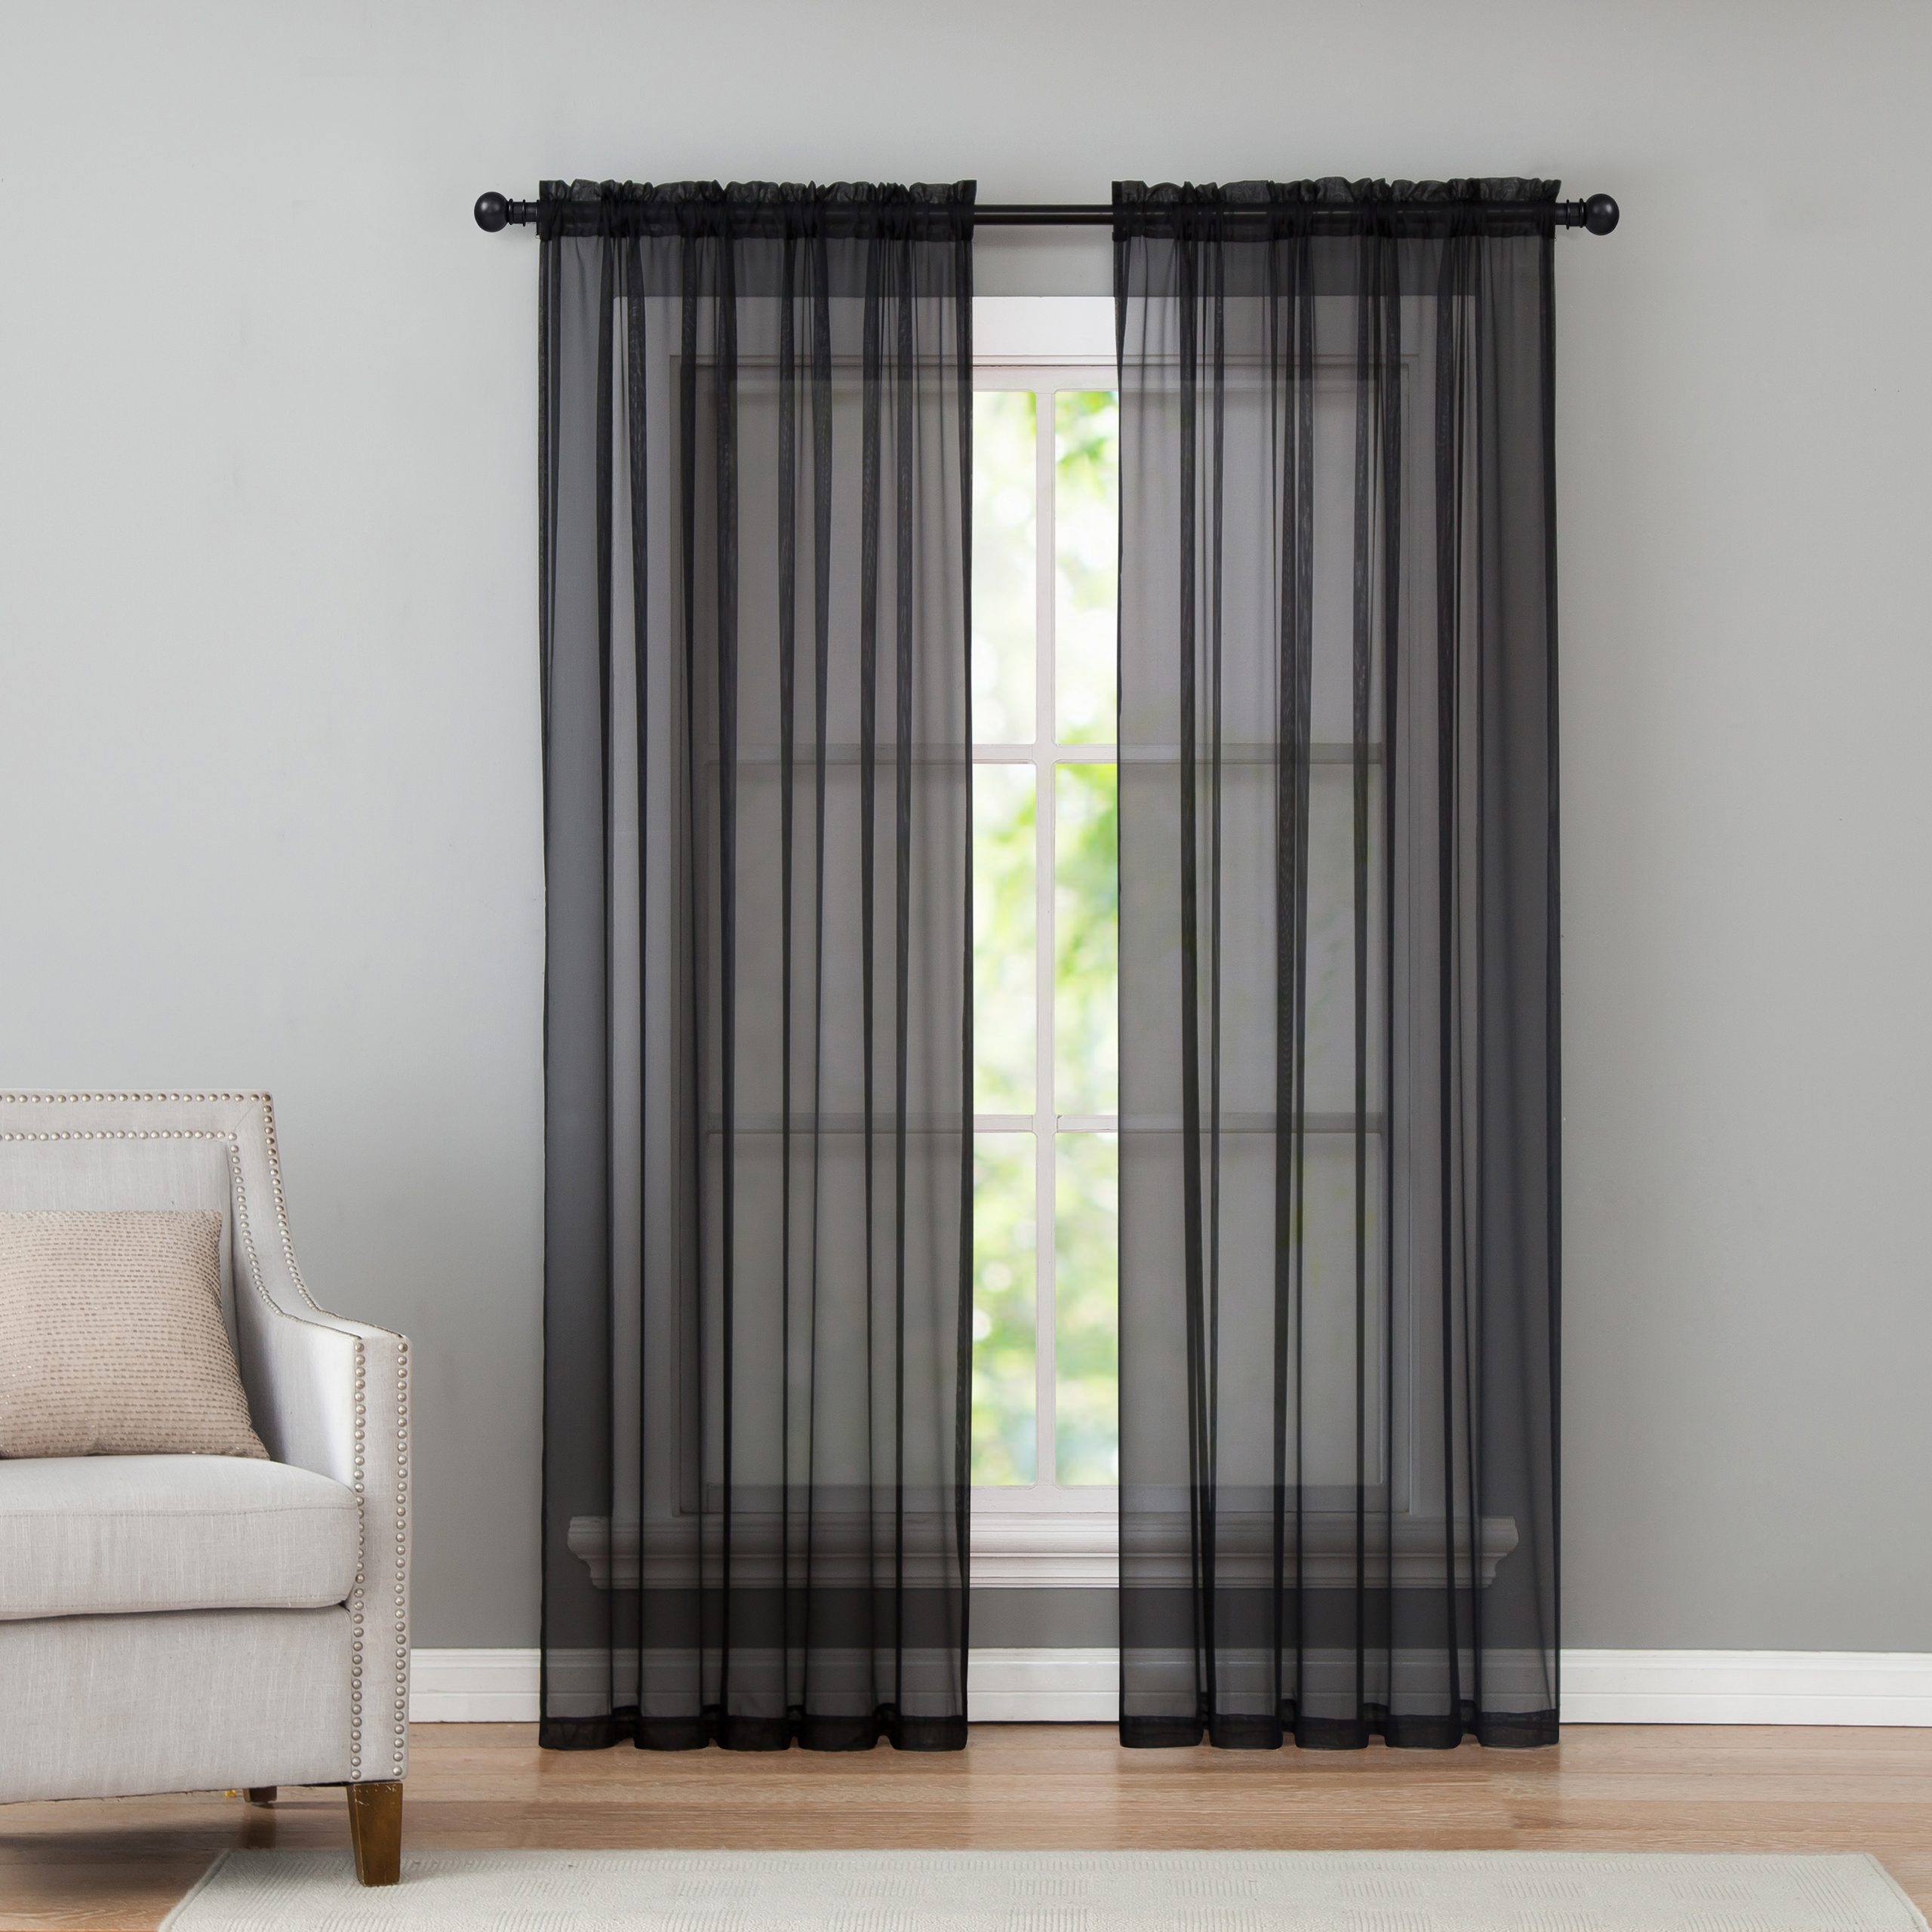 Infinity Sheer Rod Pocket Curtain Panels With Famous Vcny Home Infinity Sheer Rod Pocket Curtain Panel Pair, 50 X 84, Black (View 16 of 20)